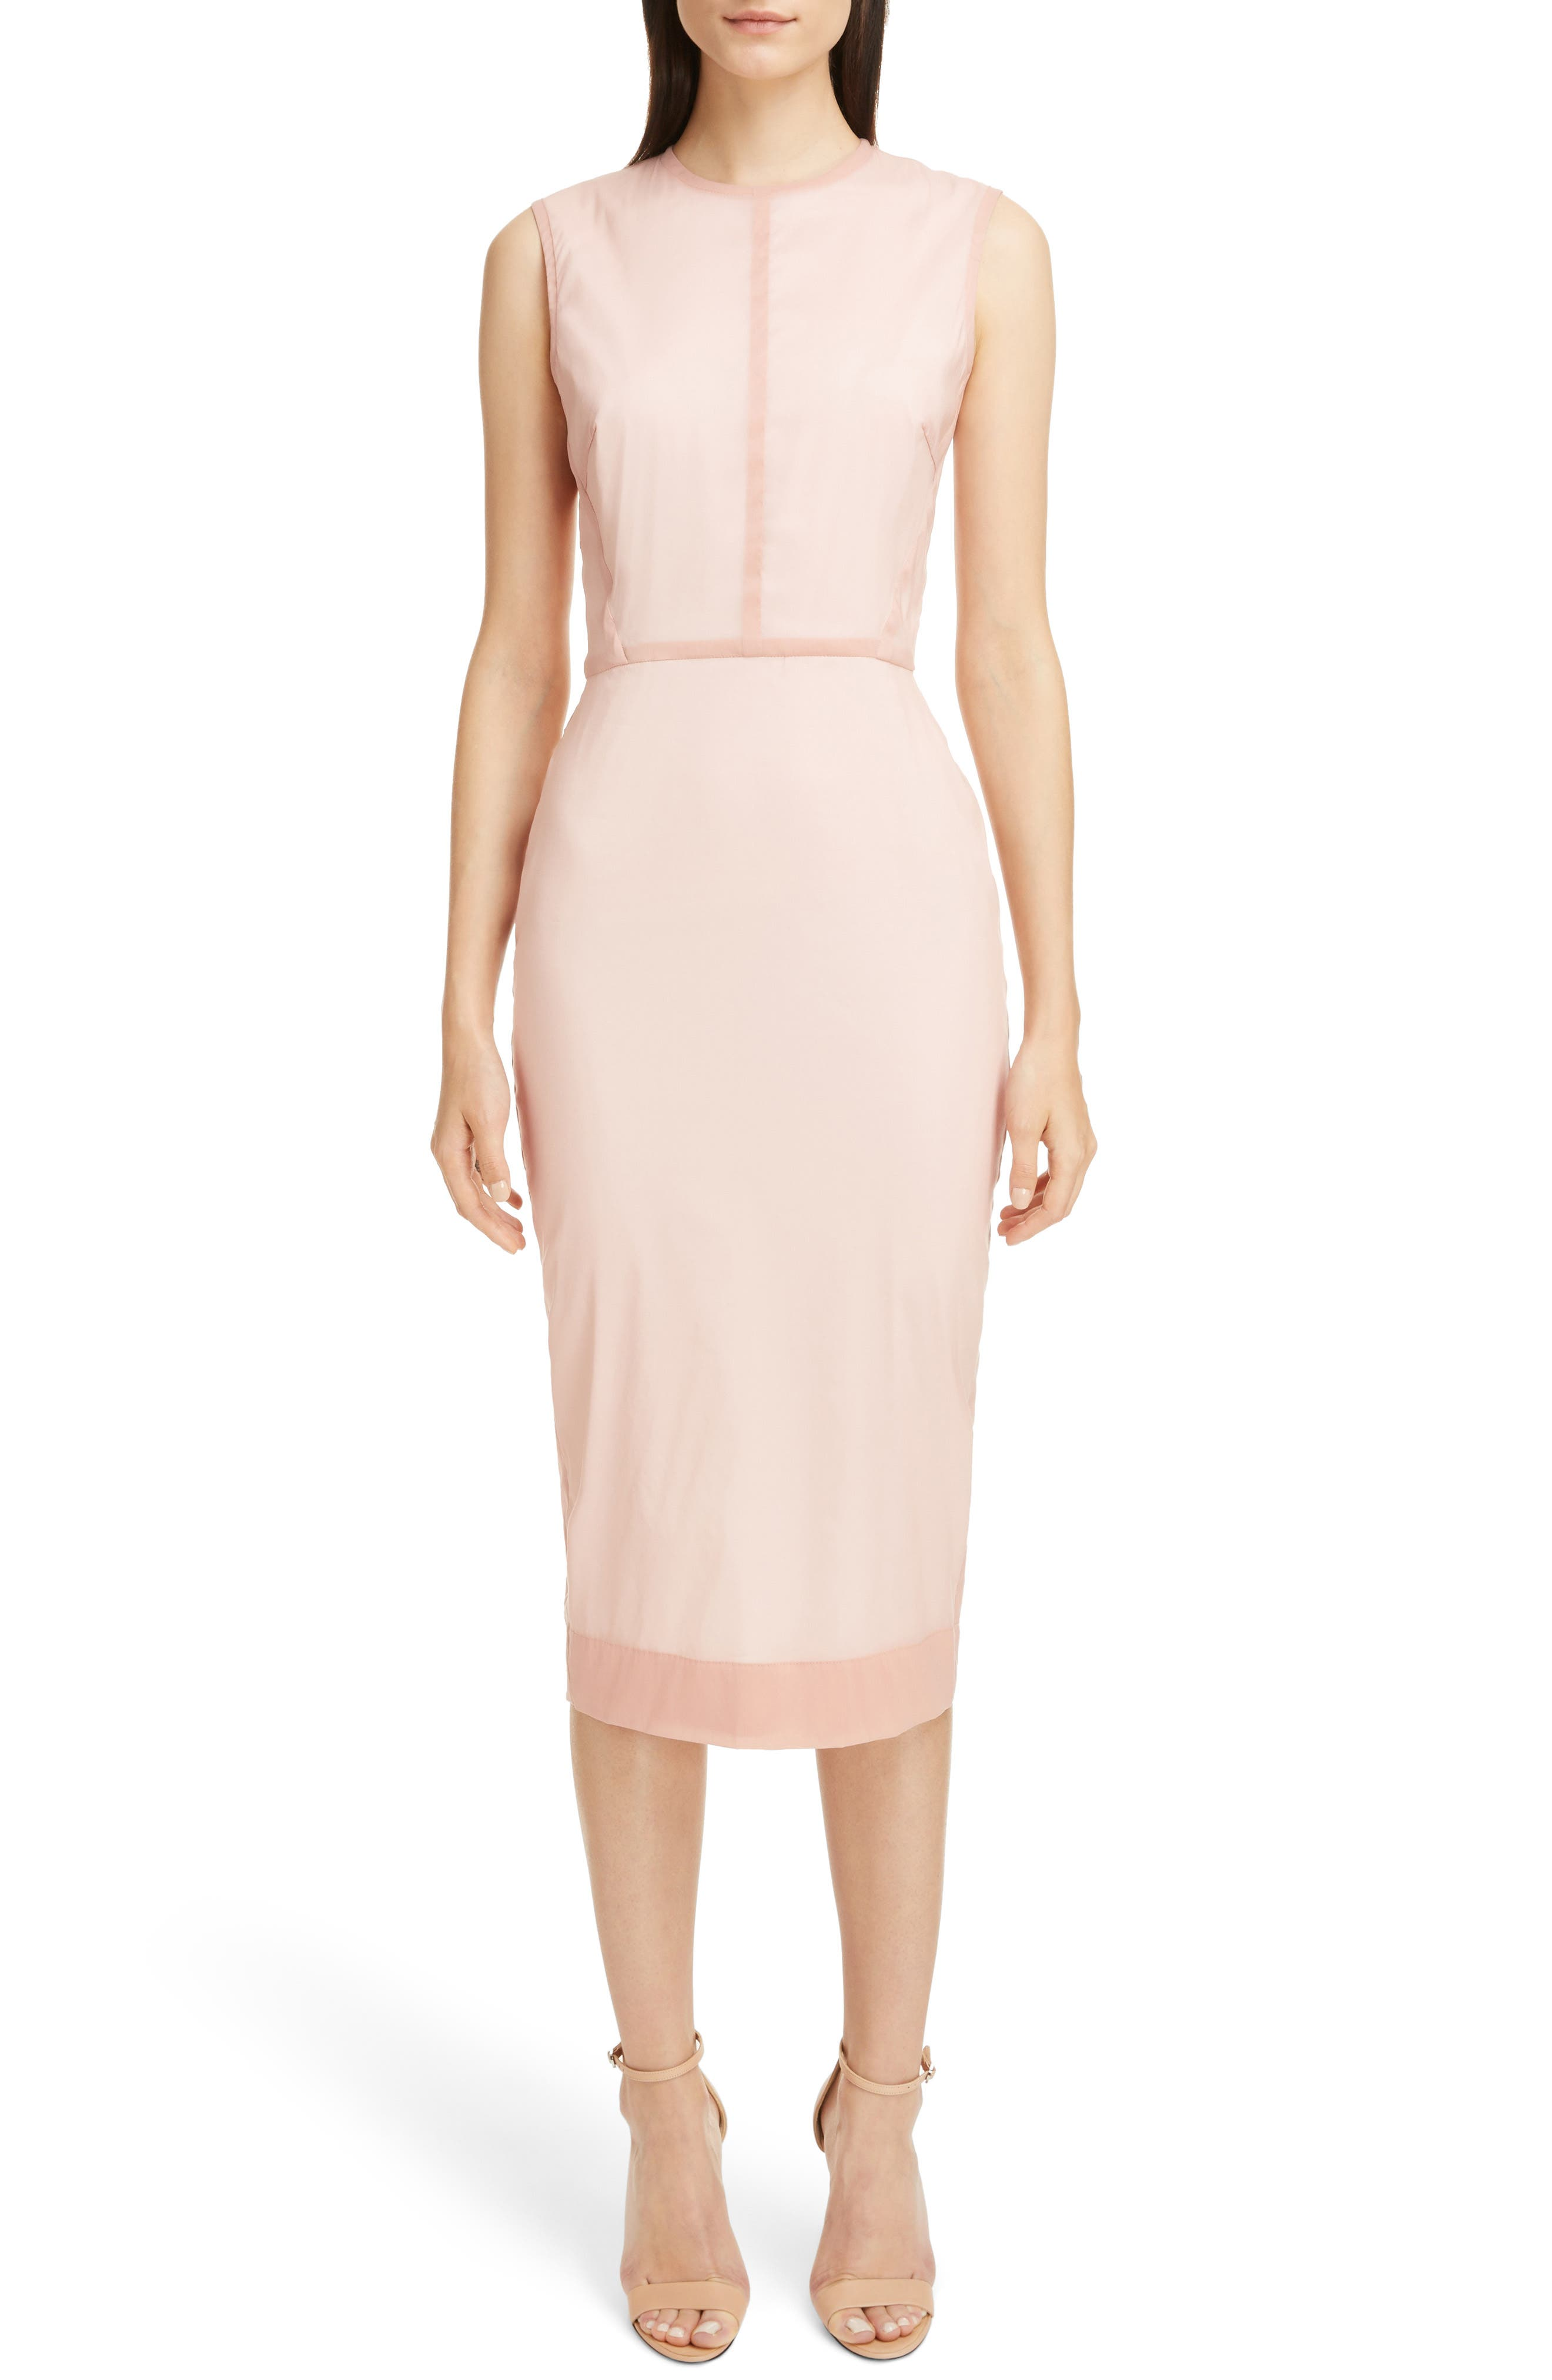 Victoria Beckham Stretch Silk Organza Sheath Dress